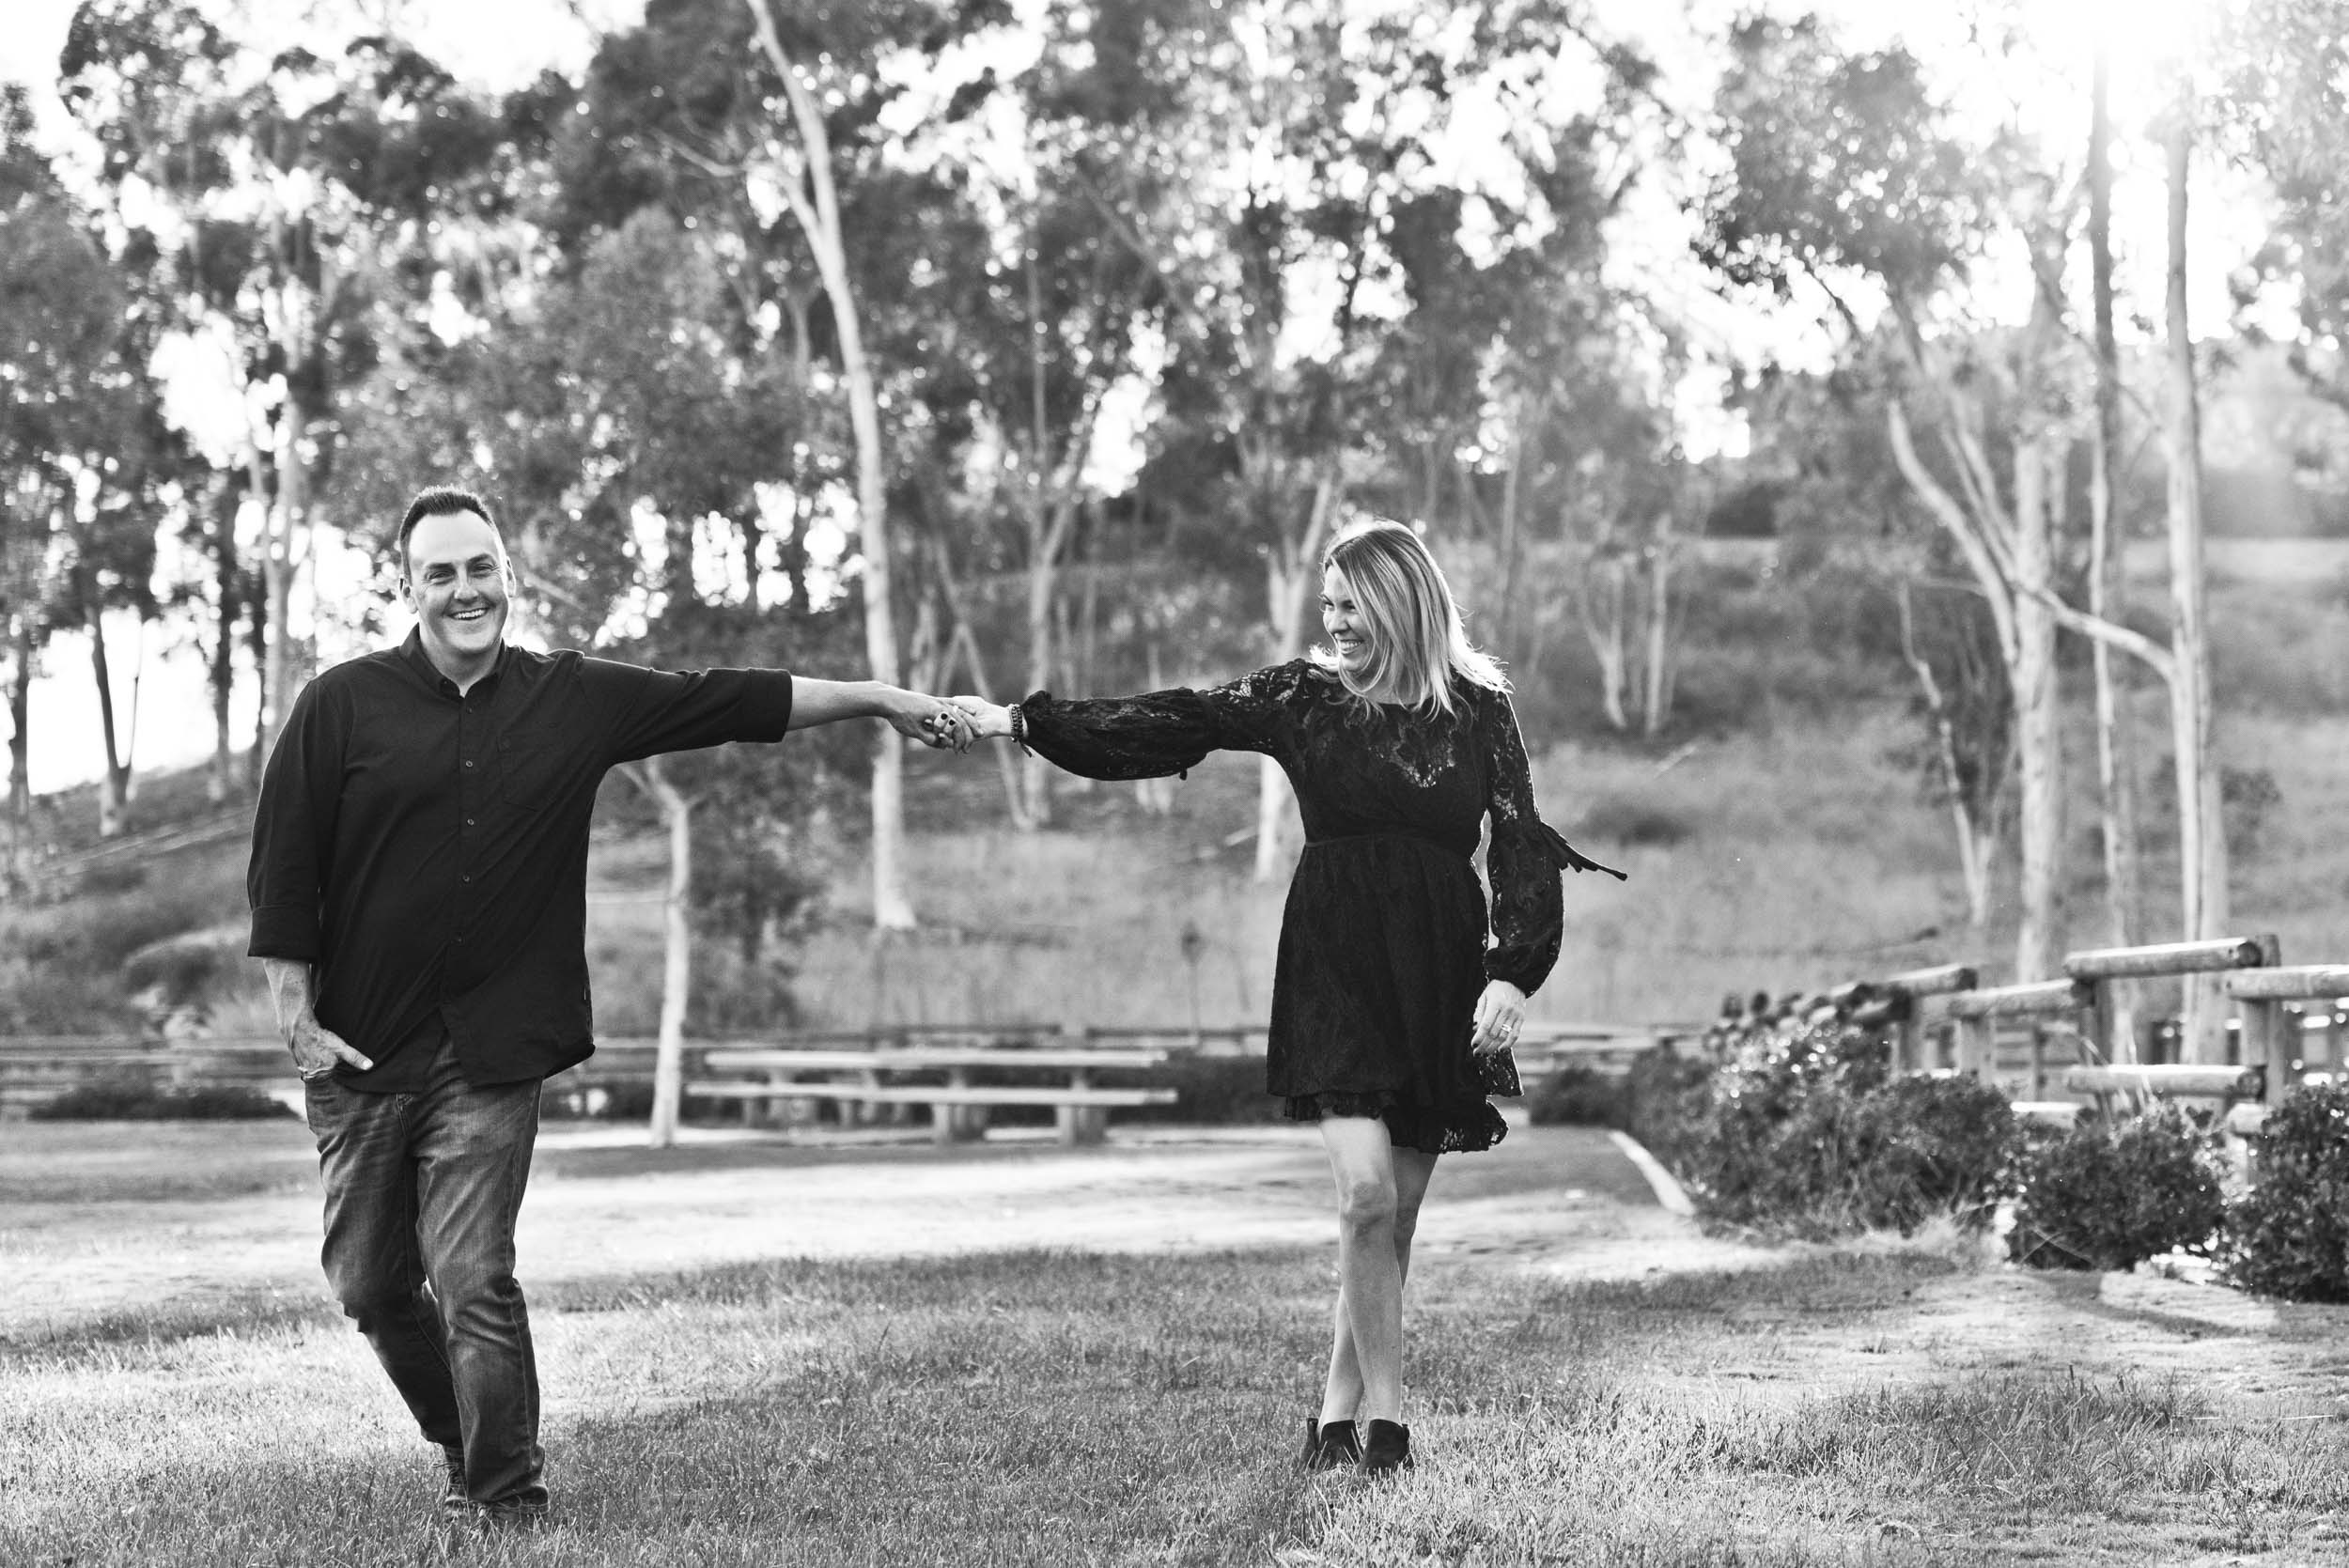 Mom and dad holding hands dancing in the park.Cedar Grove Park, Tustin, California.